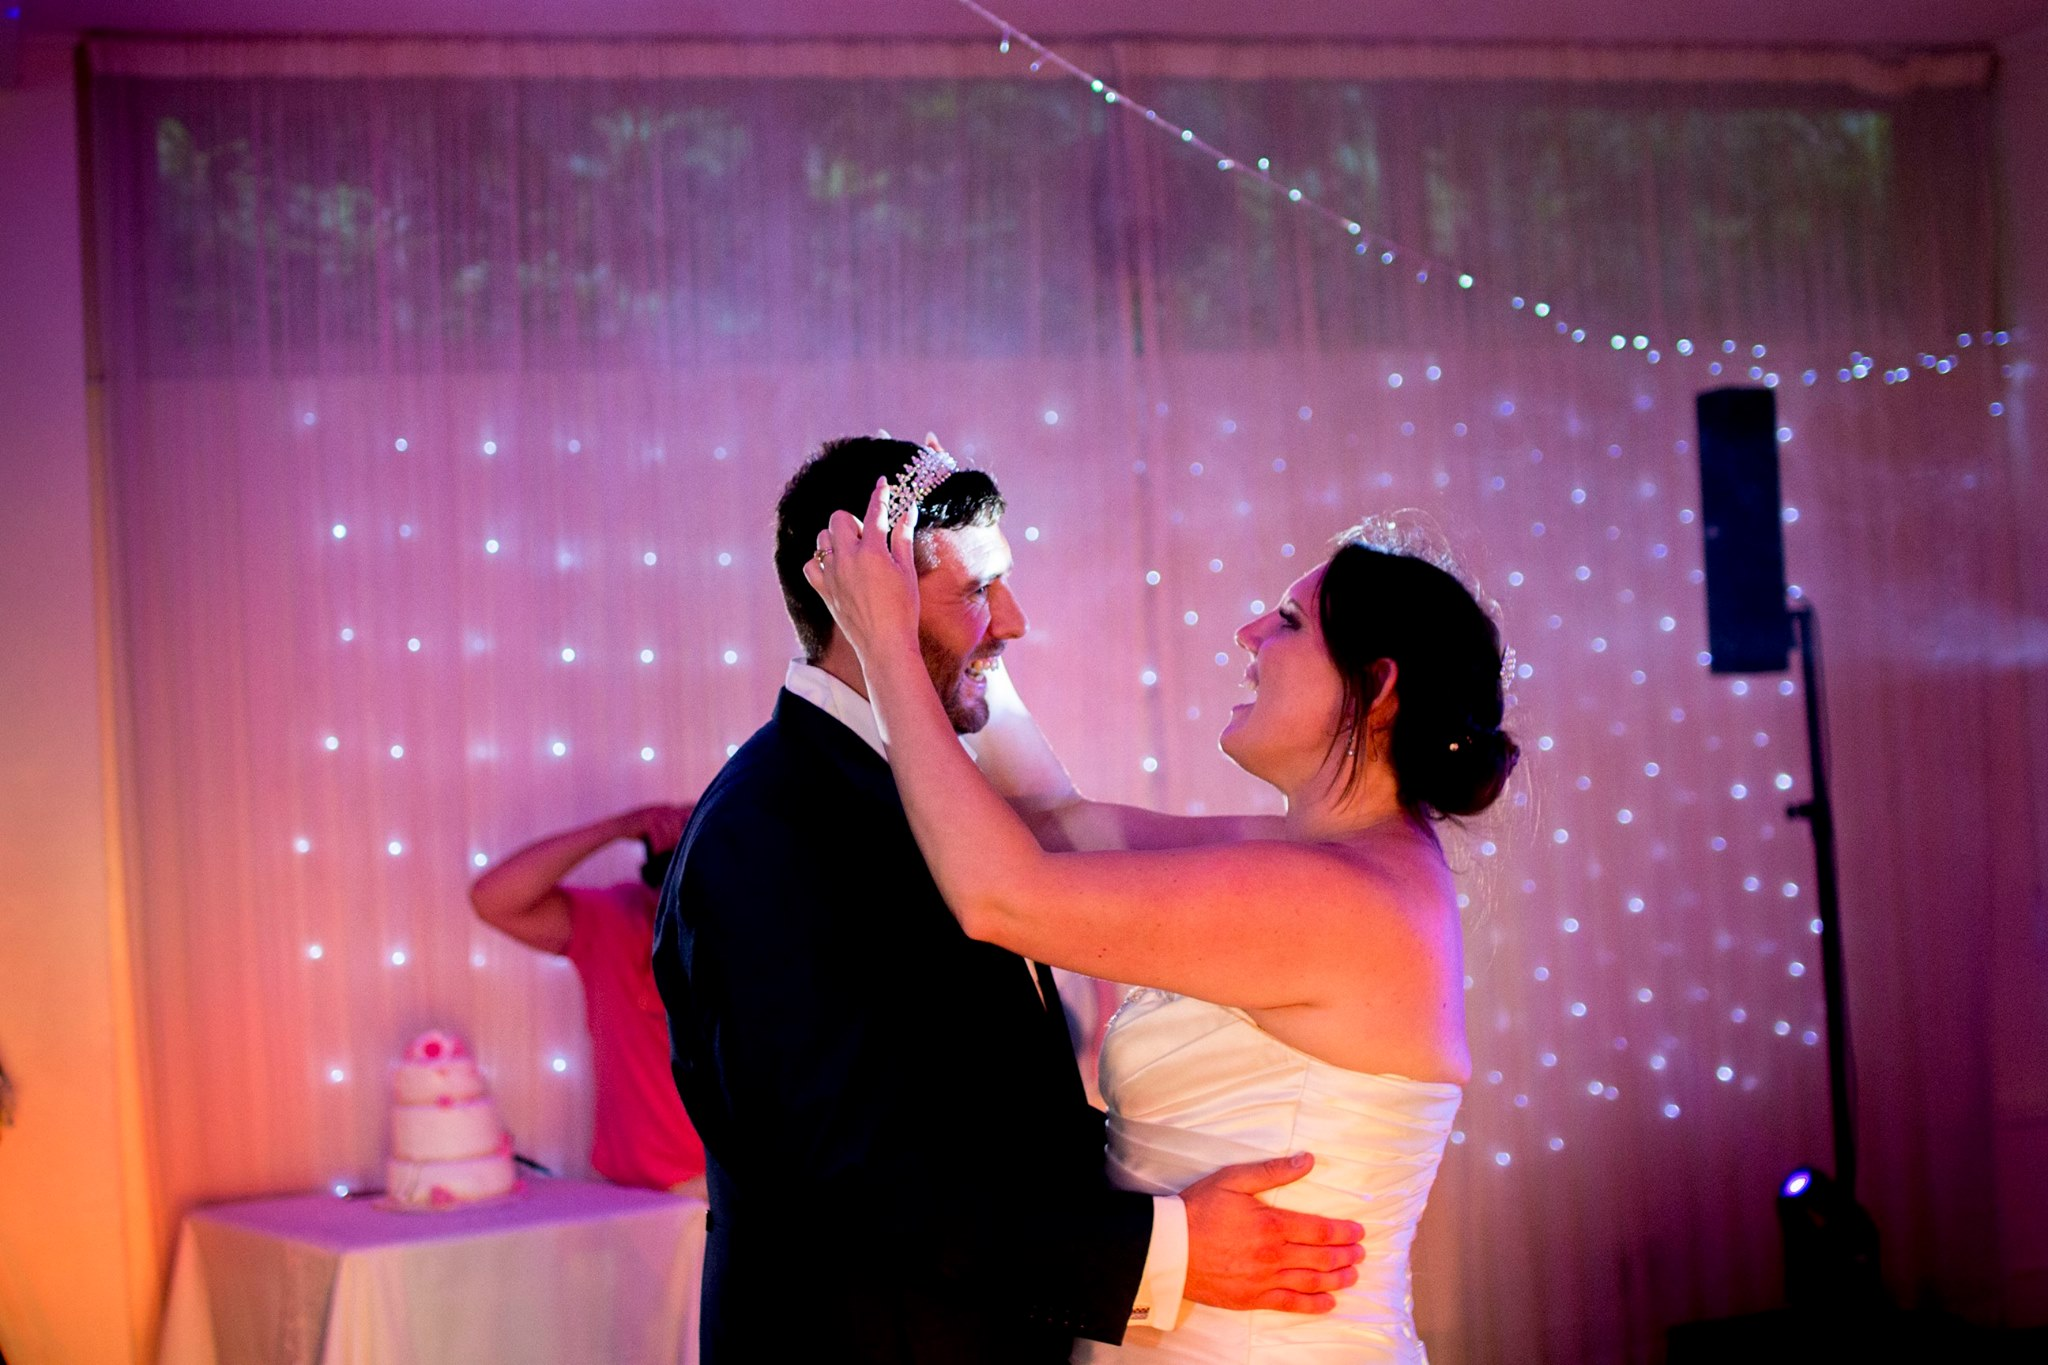 cornwall wedding disco dj photographer 28